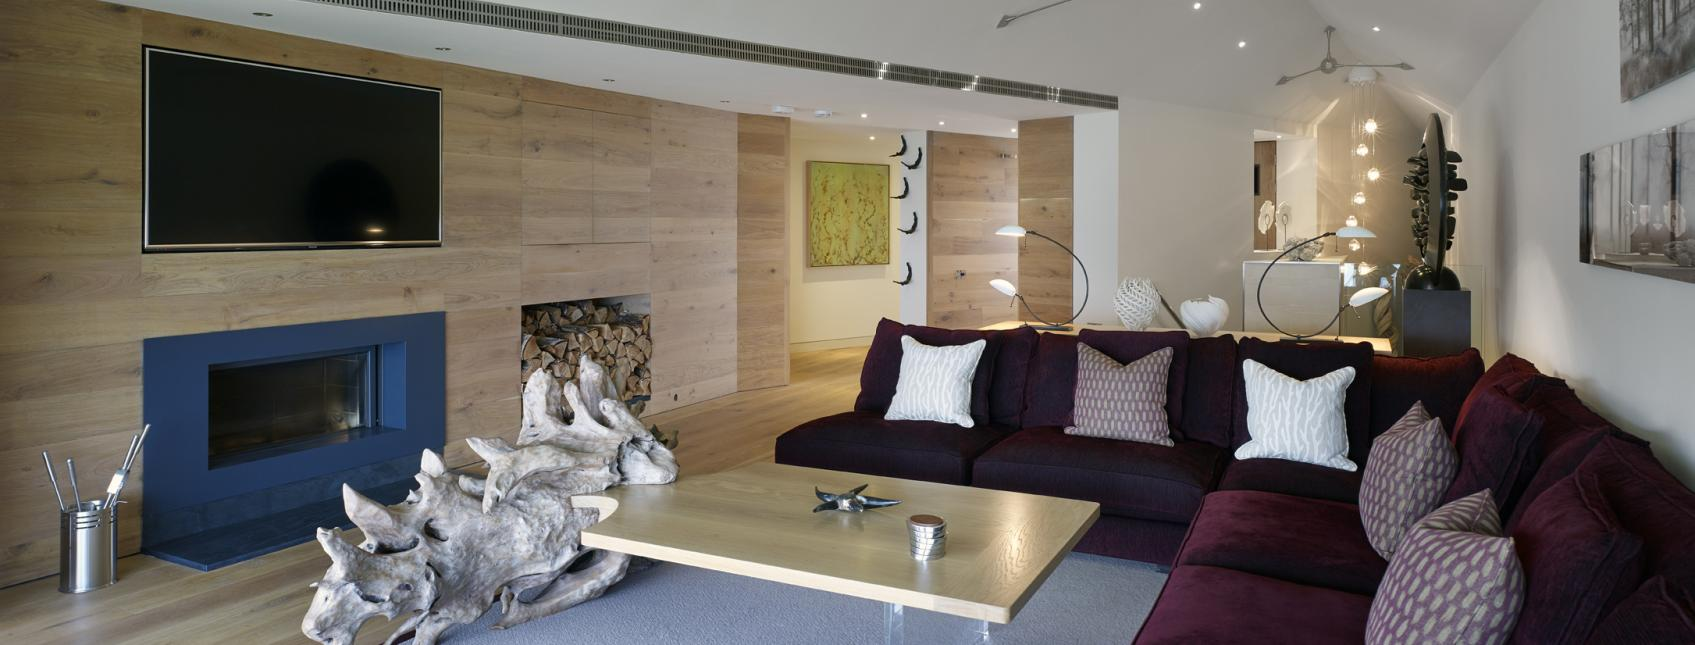 Oak clad walls in North Cornwall Property